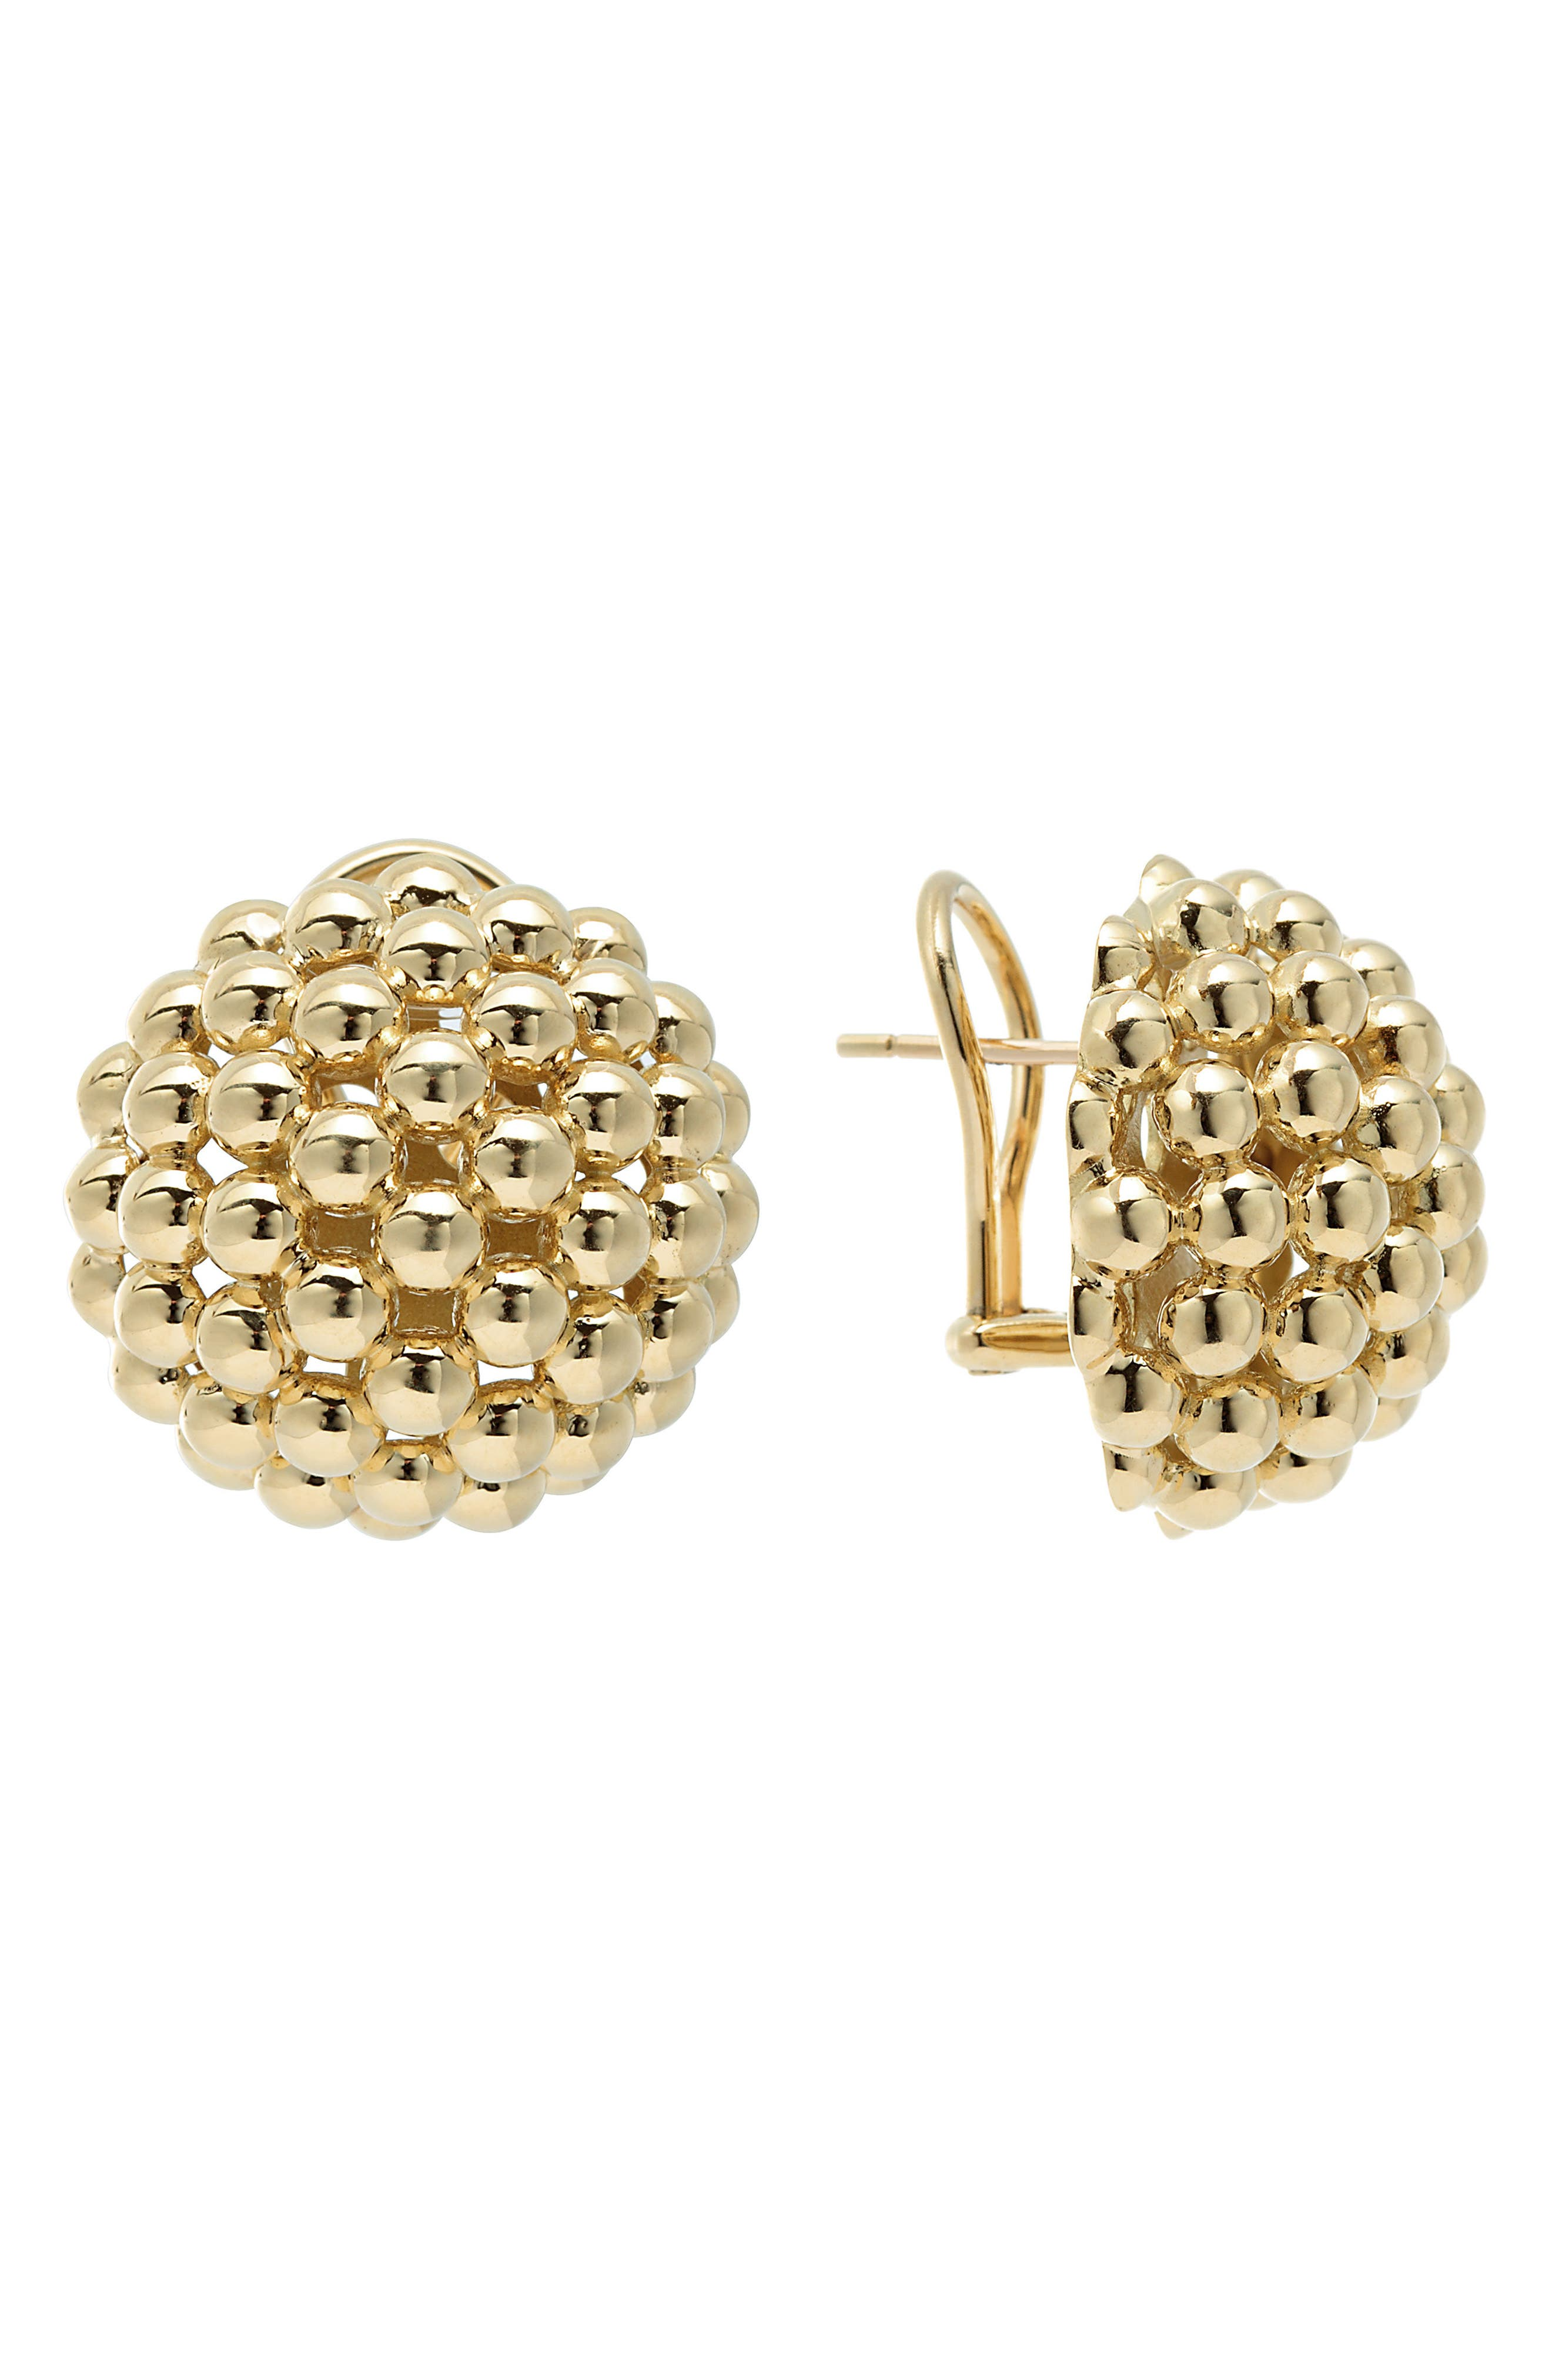 Caviar Gold Dome Omega Earrings,                         Main,                         color, GOLD